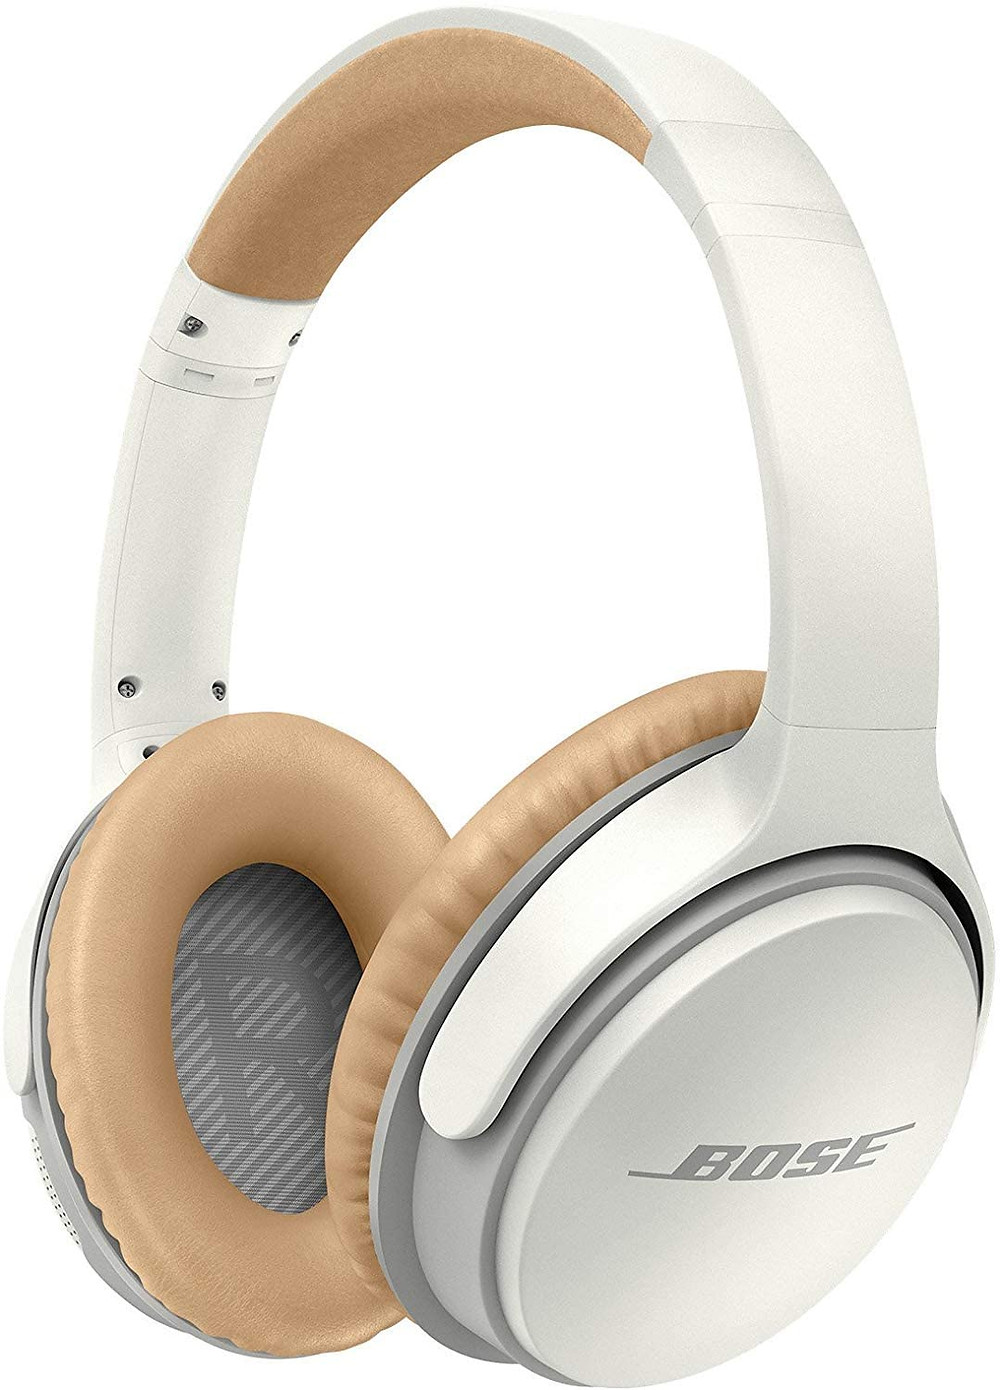 Bose white head phones